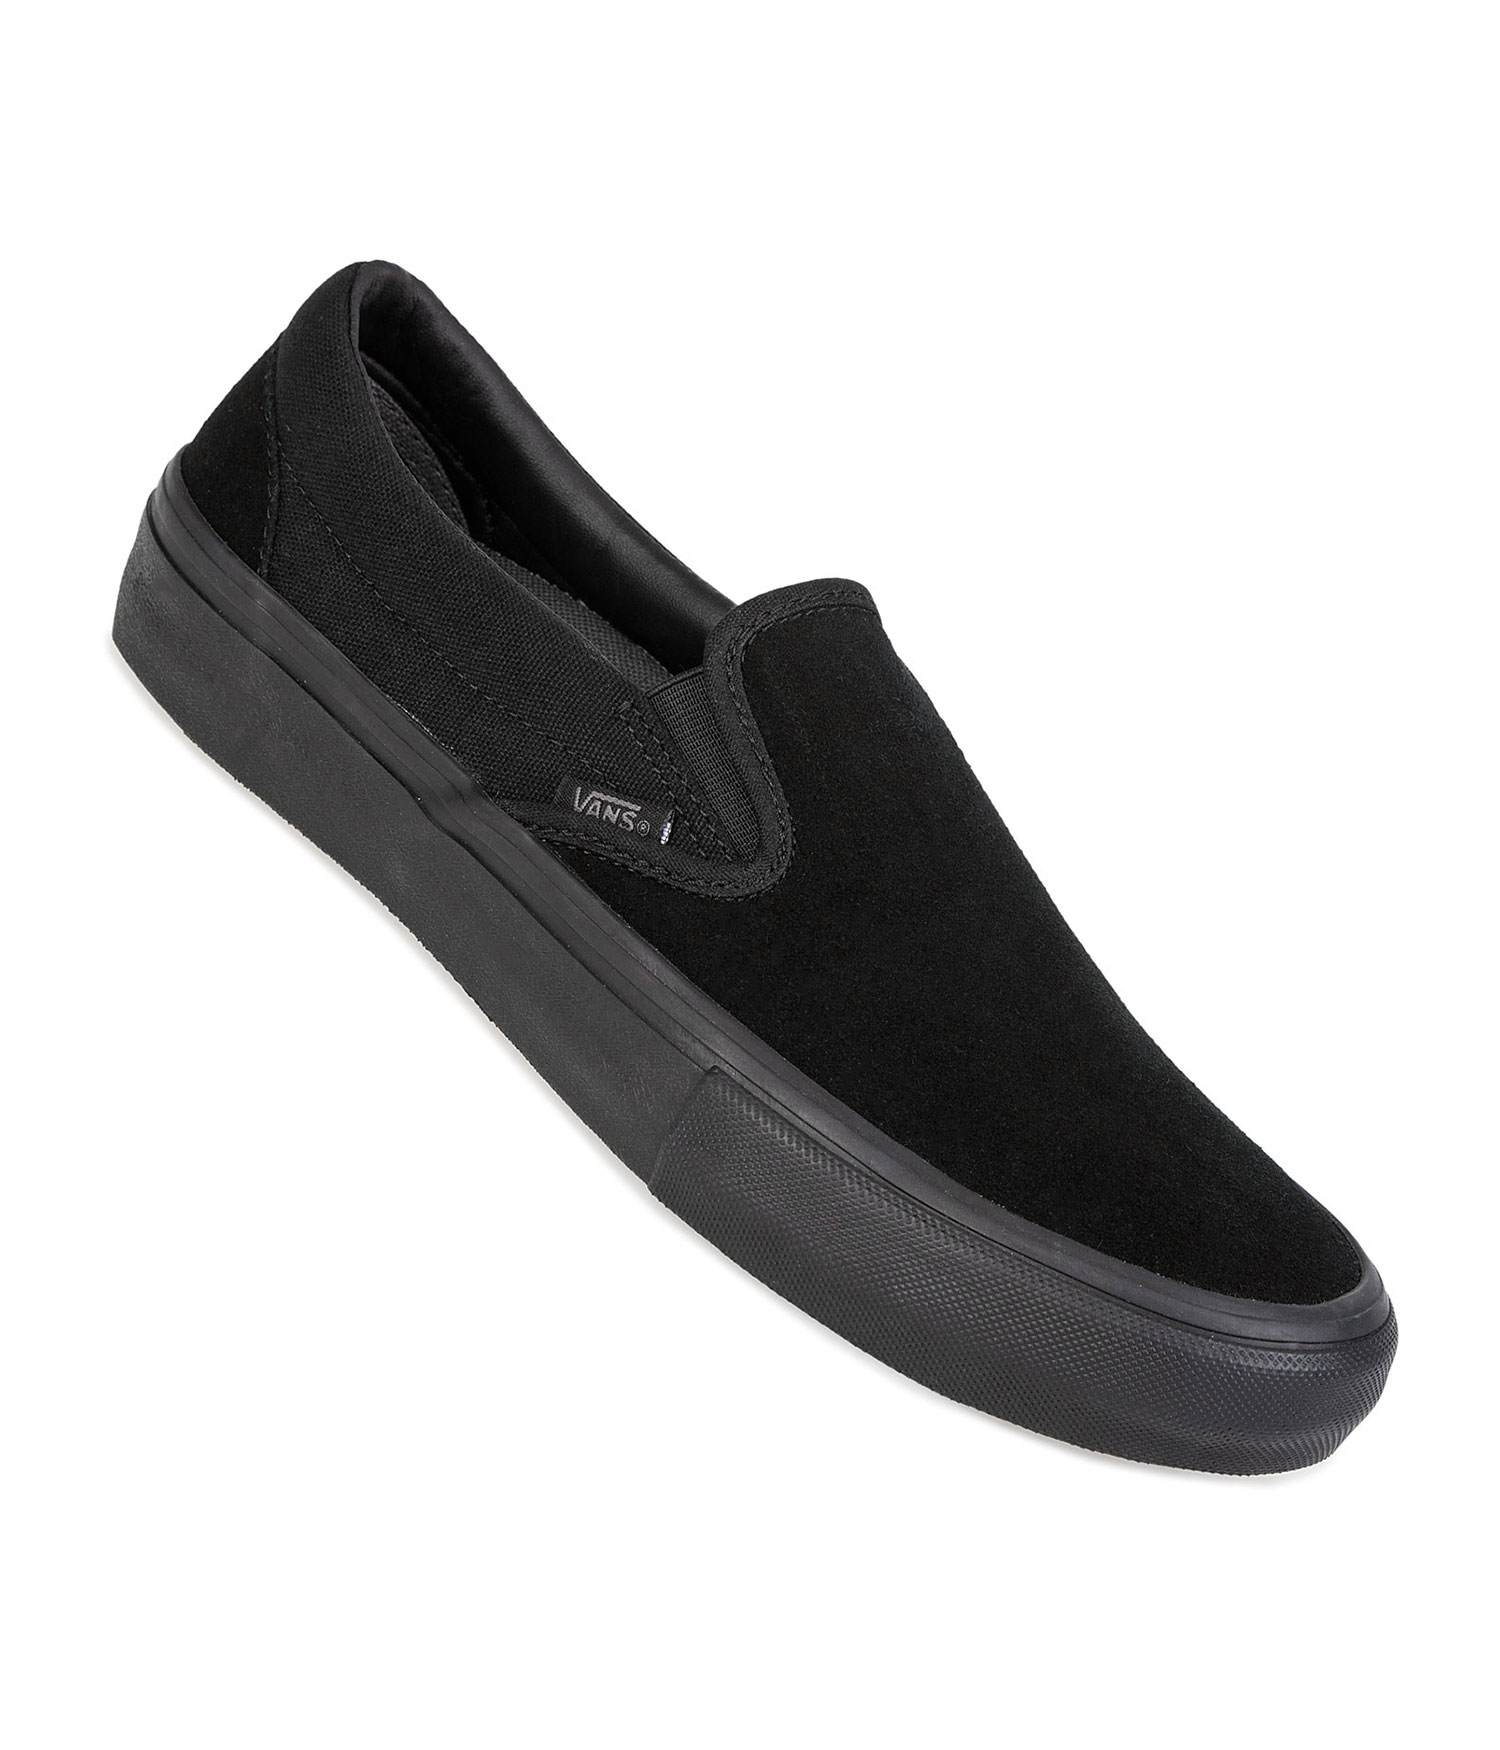 vans slip on pro chaussure blackout achetez sur skatedeluxe. Black Bedroom Furniture Sets. Home Design Ideas